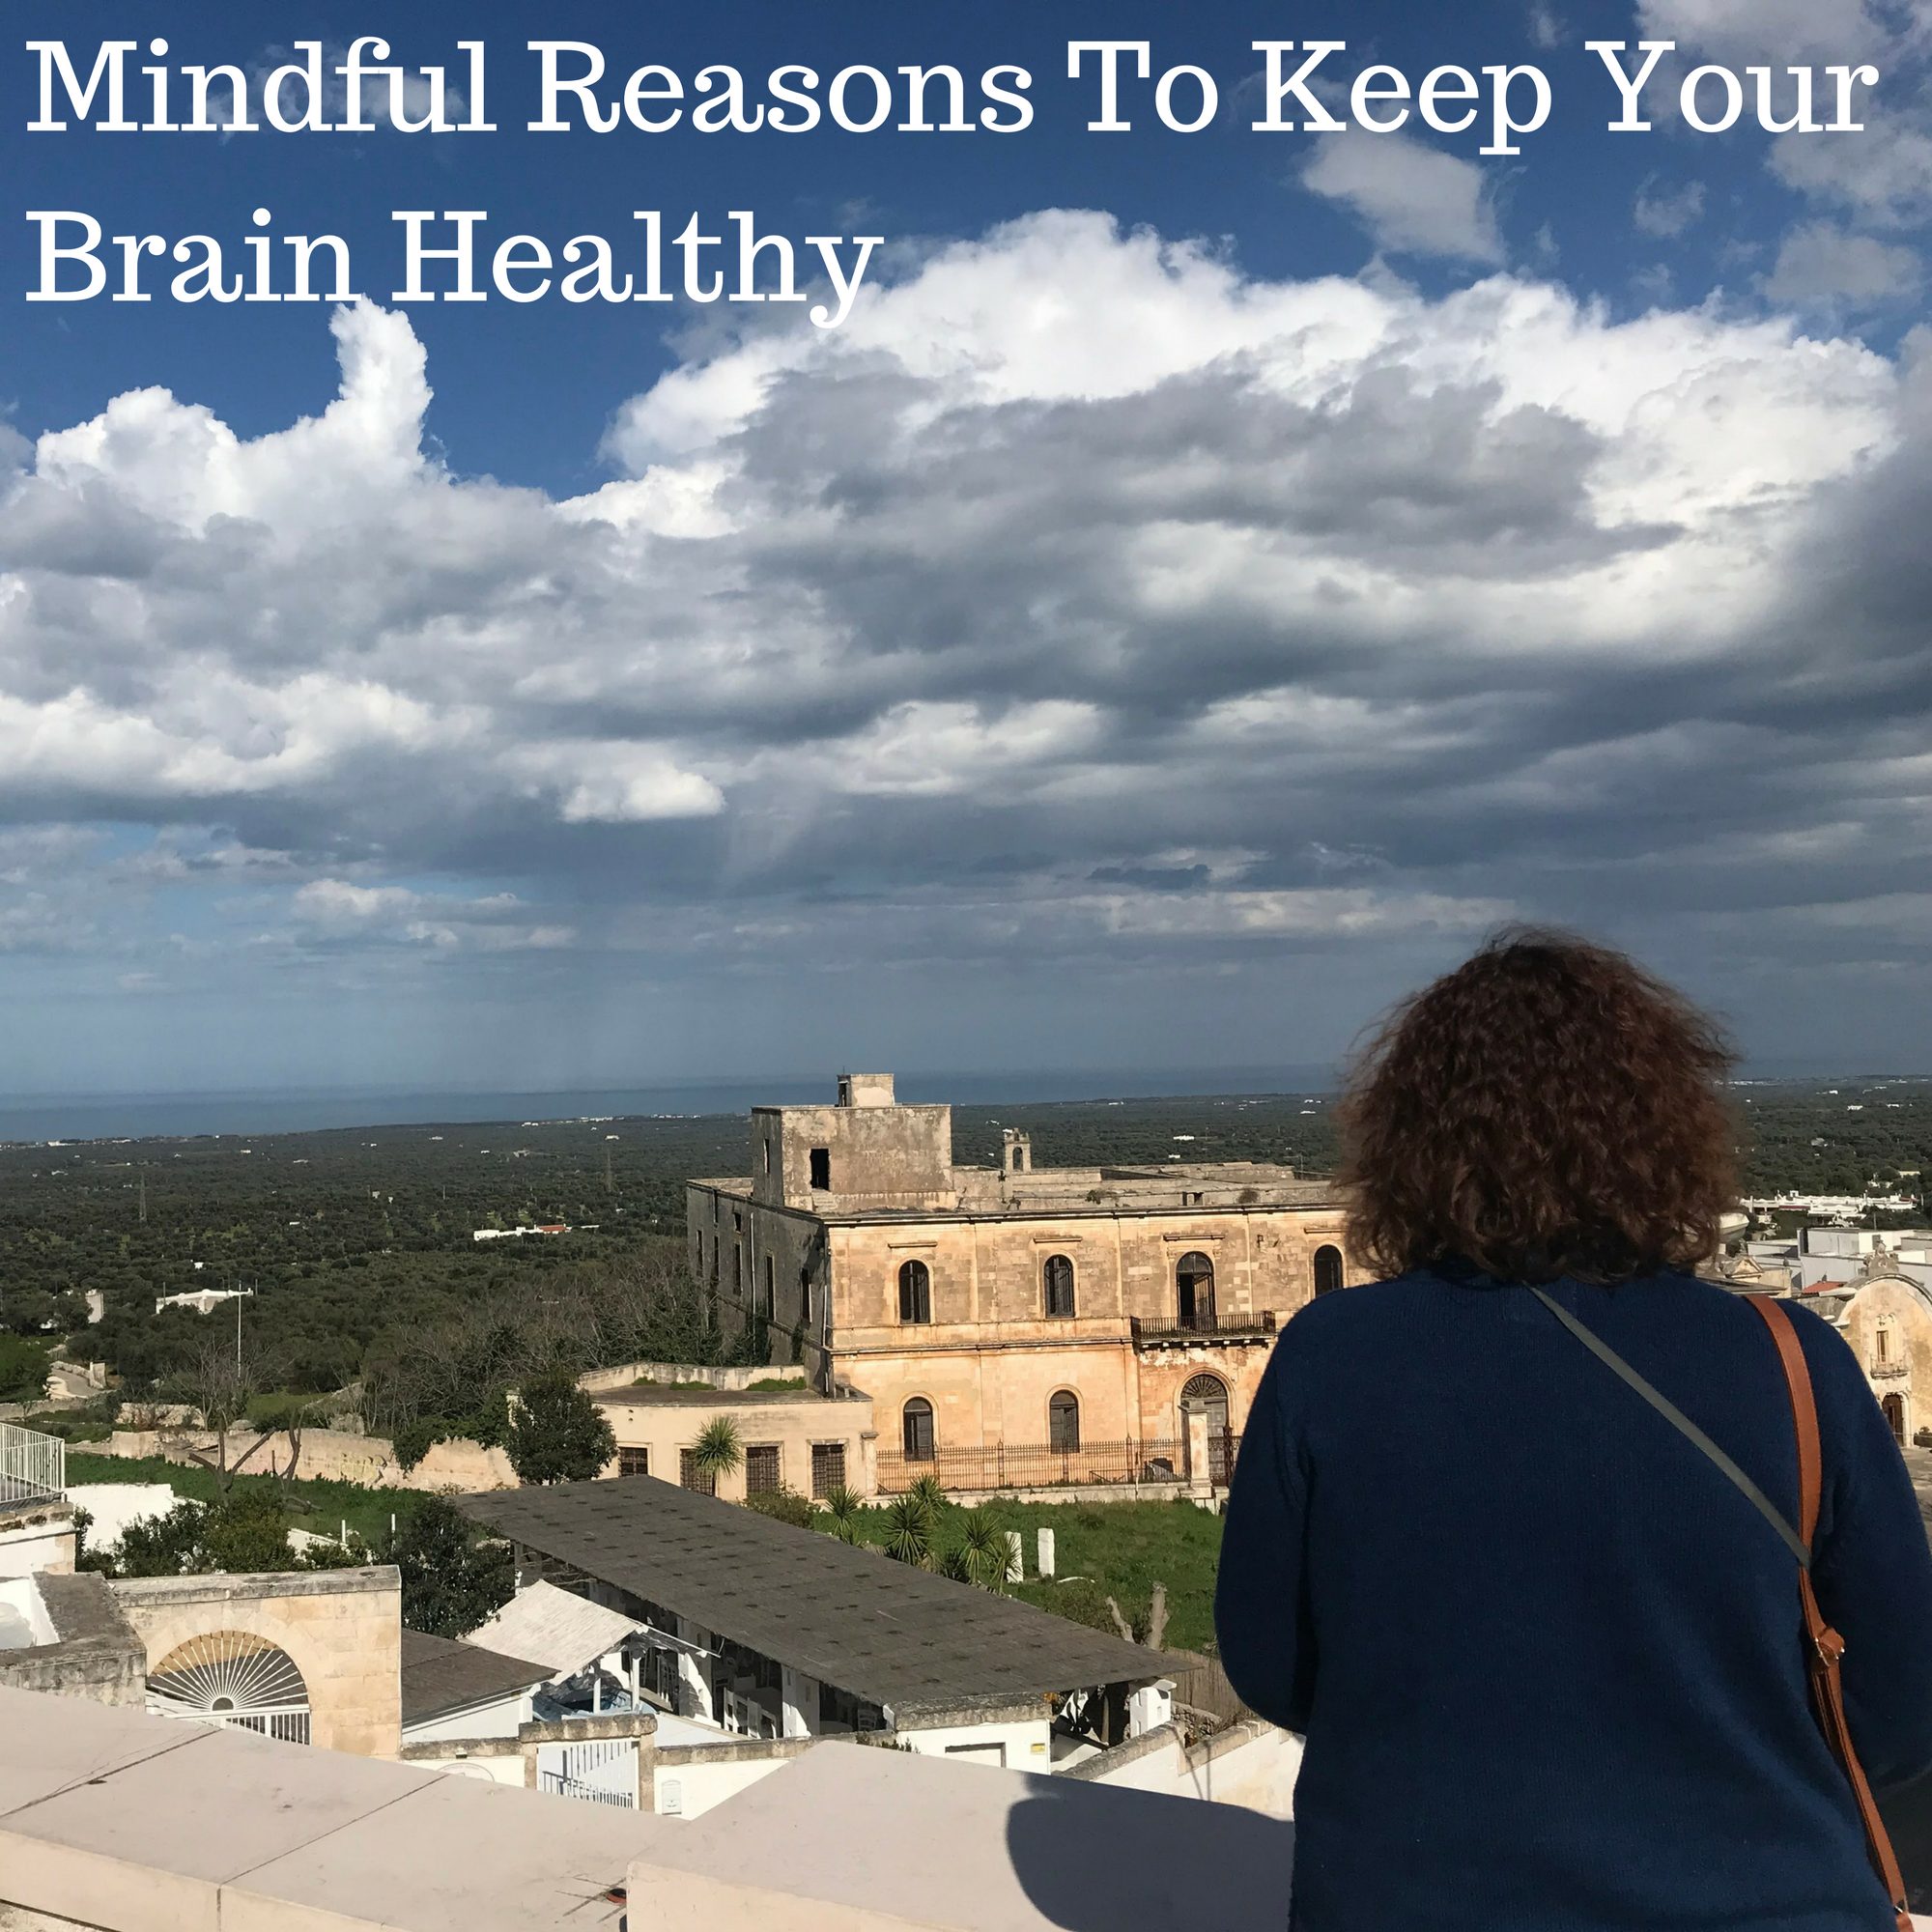 Mindful Reasons To Keep Your Brain Healthy